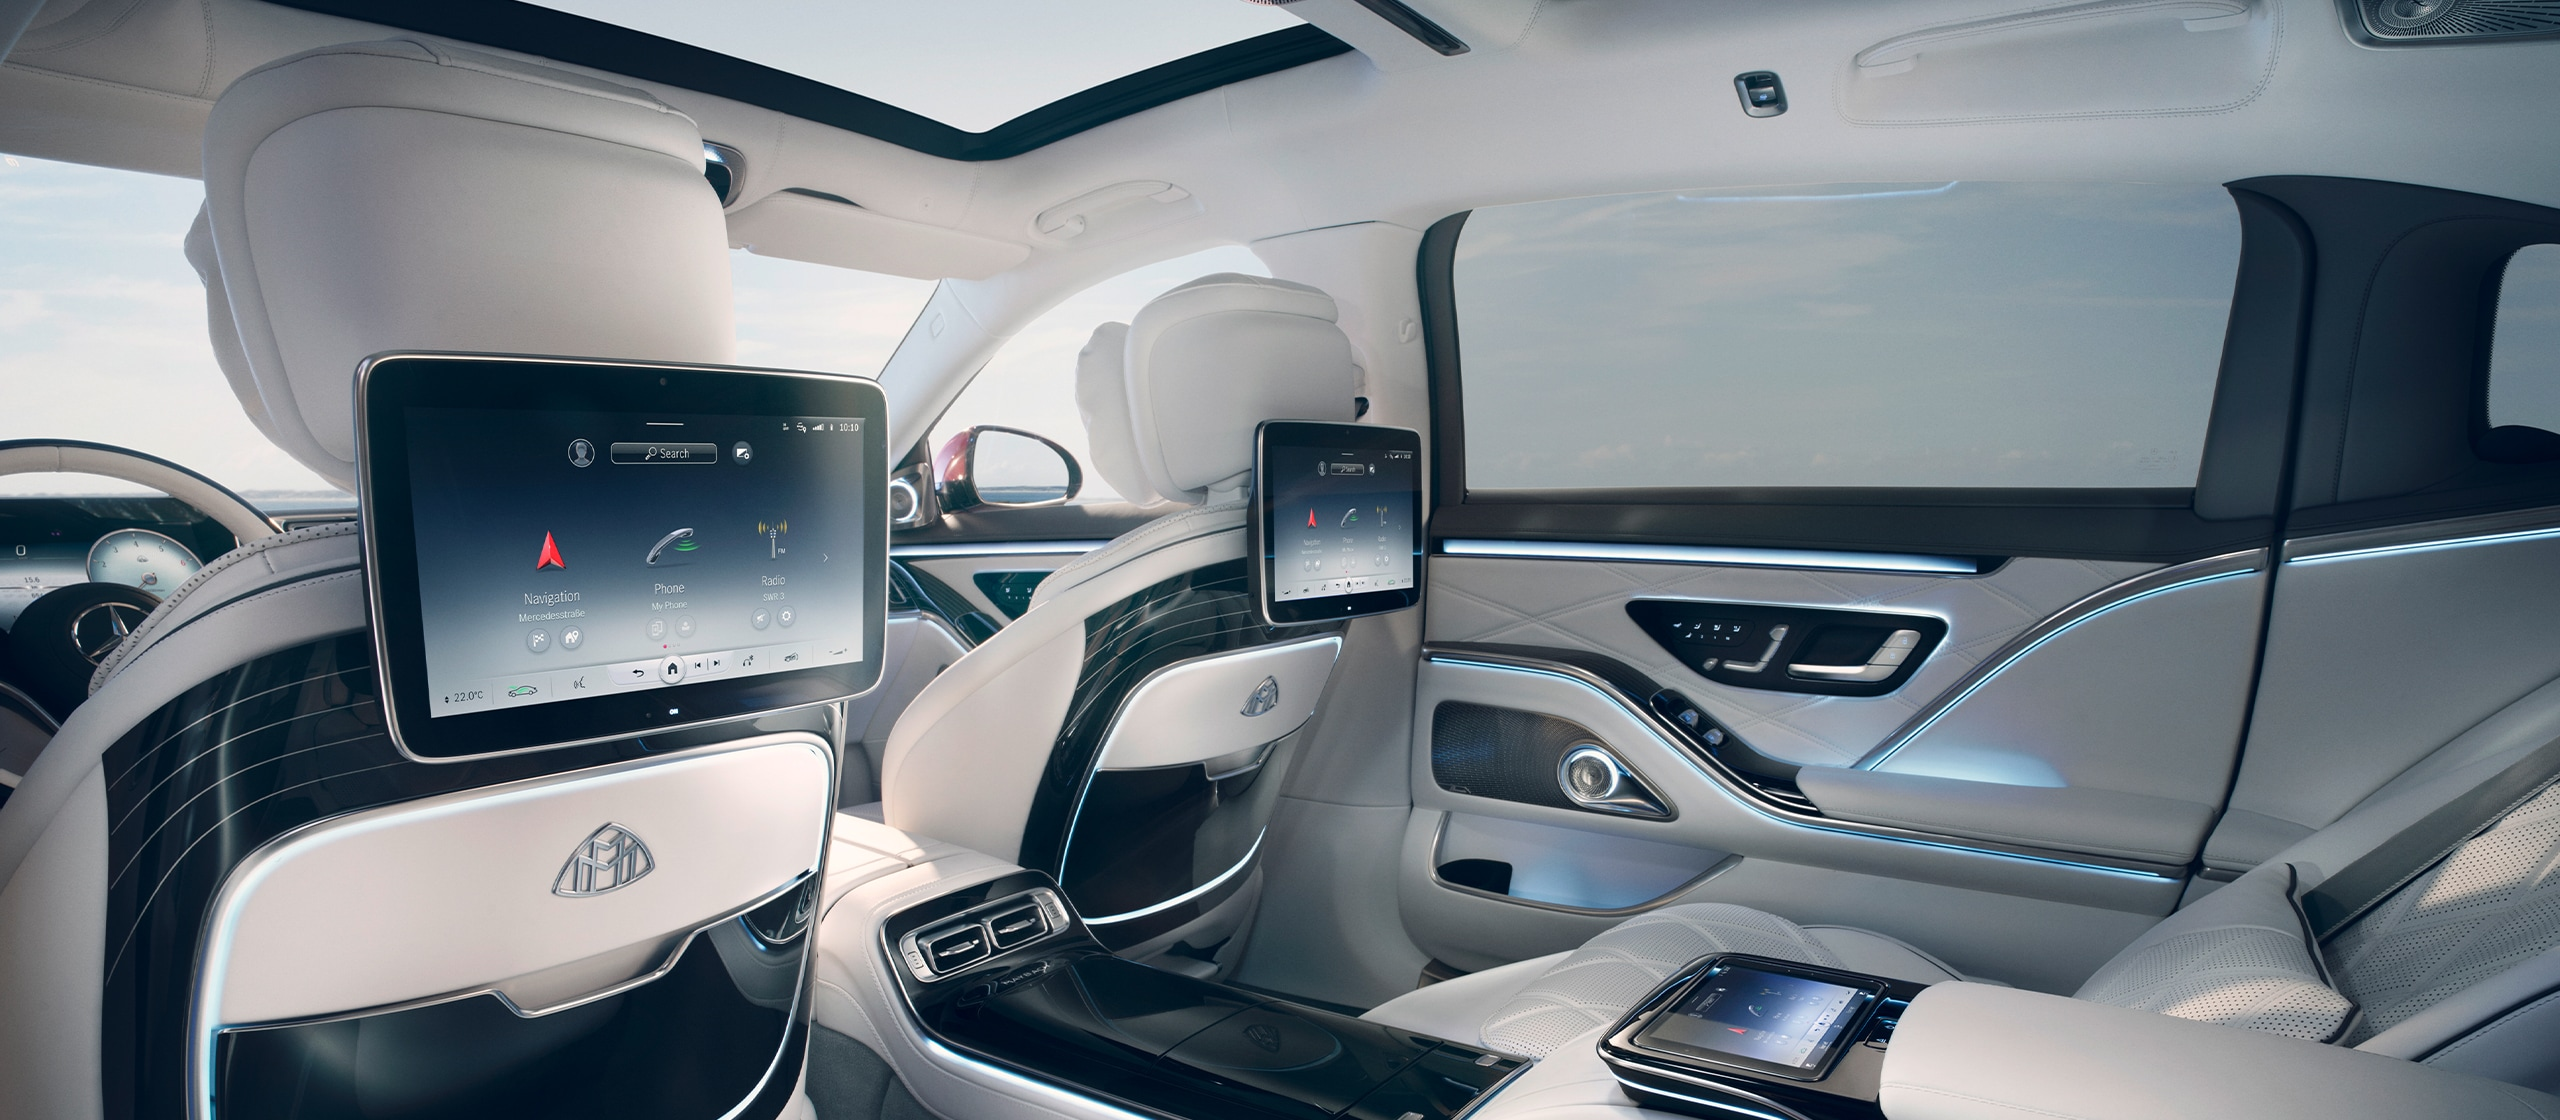 The new 2021 Mercedes-Maybach S-Class (Z 223): The picture shows the interior of the Mercedes-Maybach S-Class.